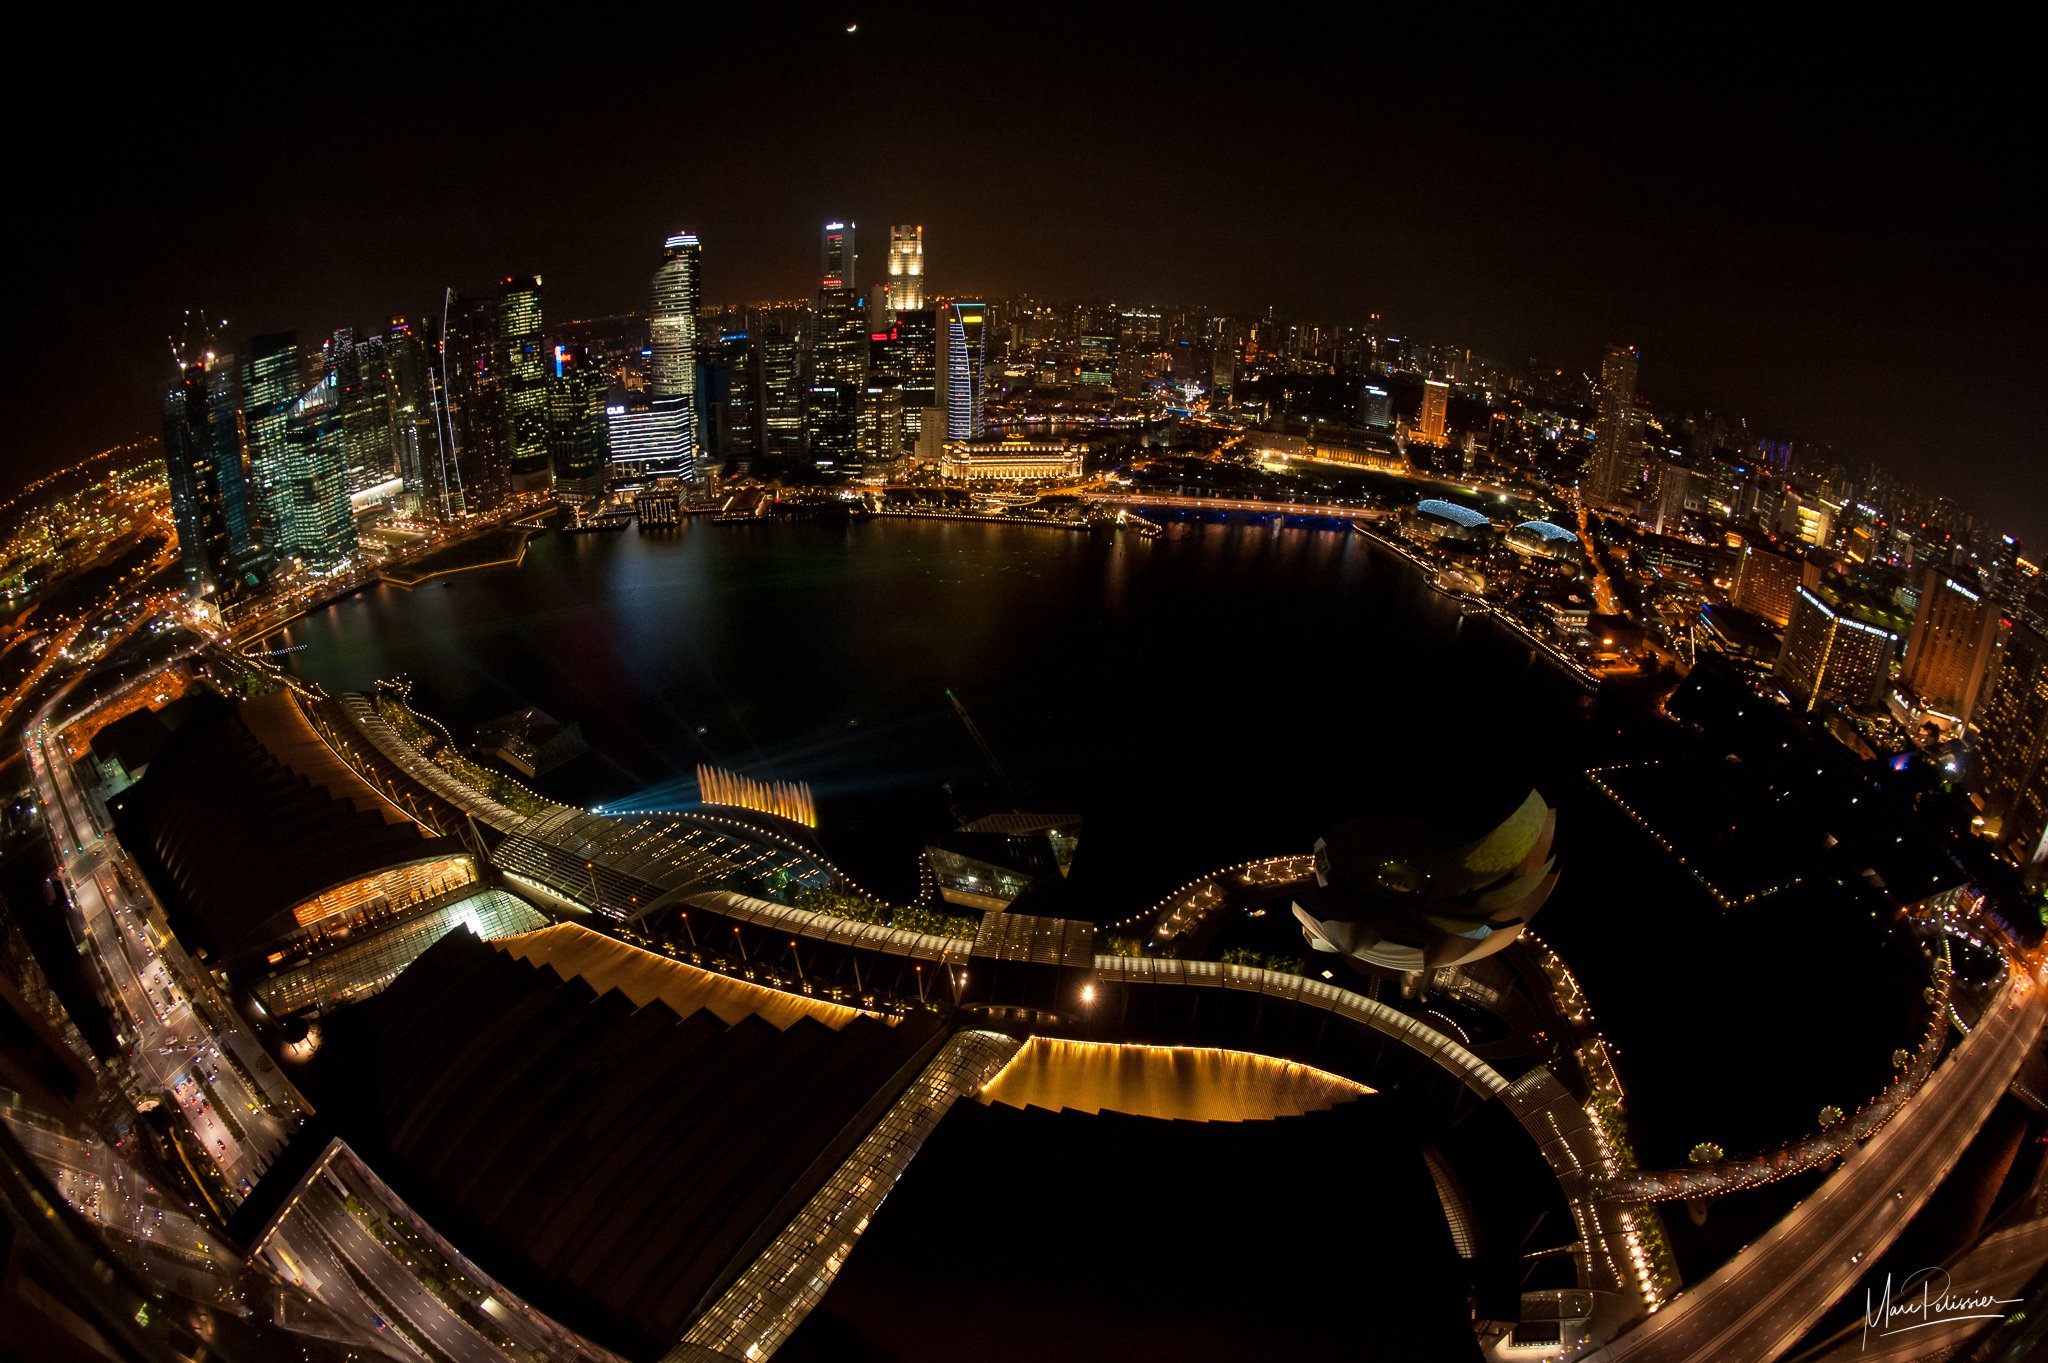 Marina Bay view from top of Bay sands platform, Singapore